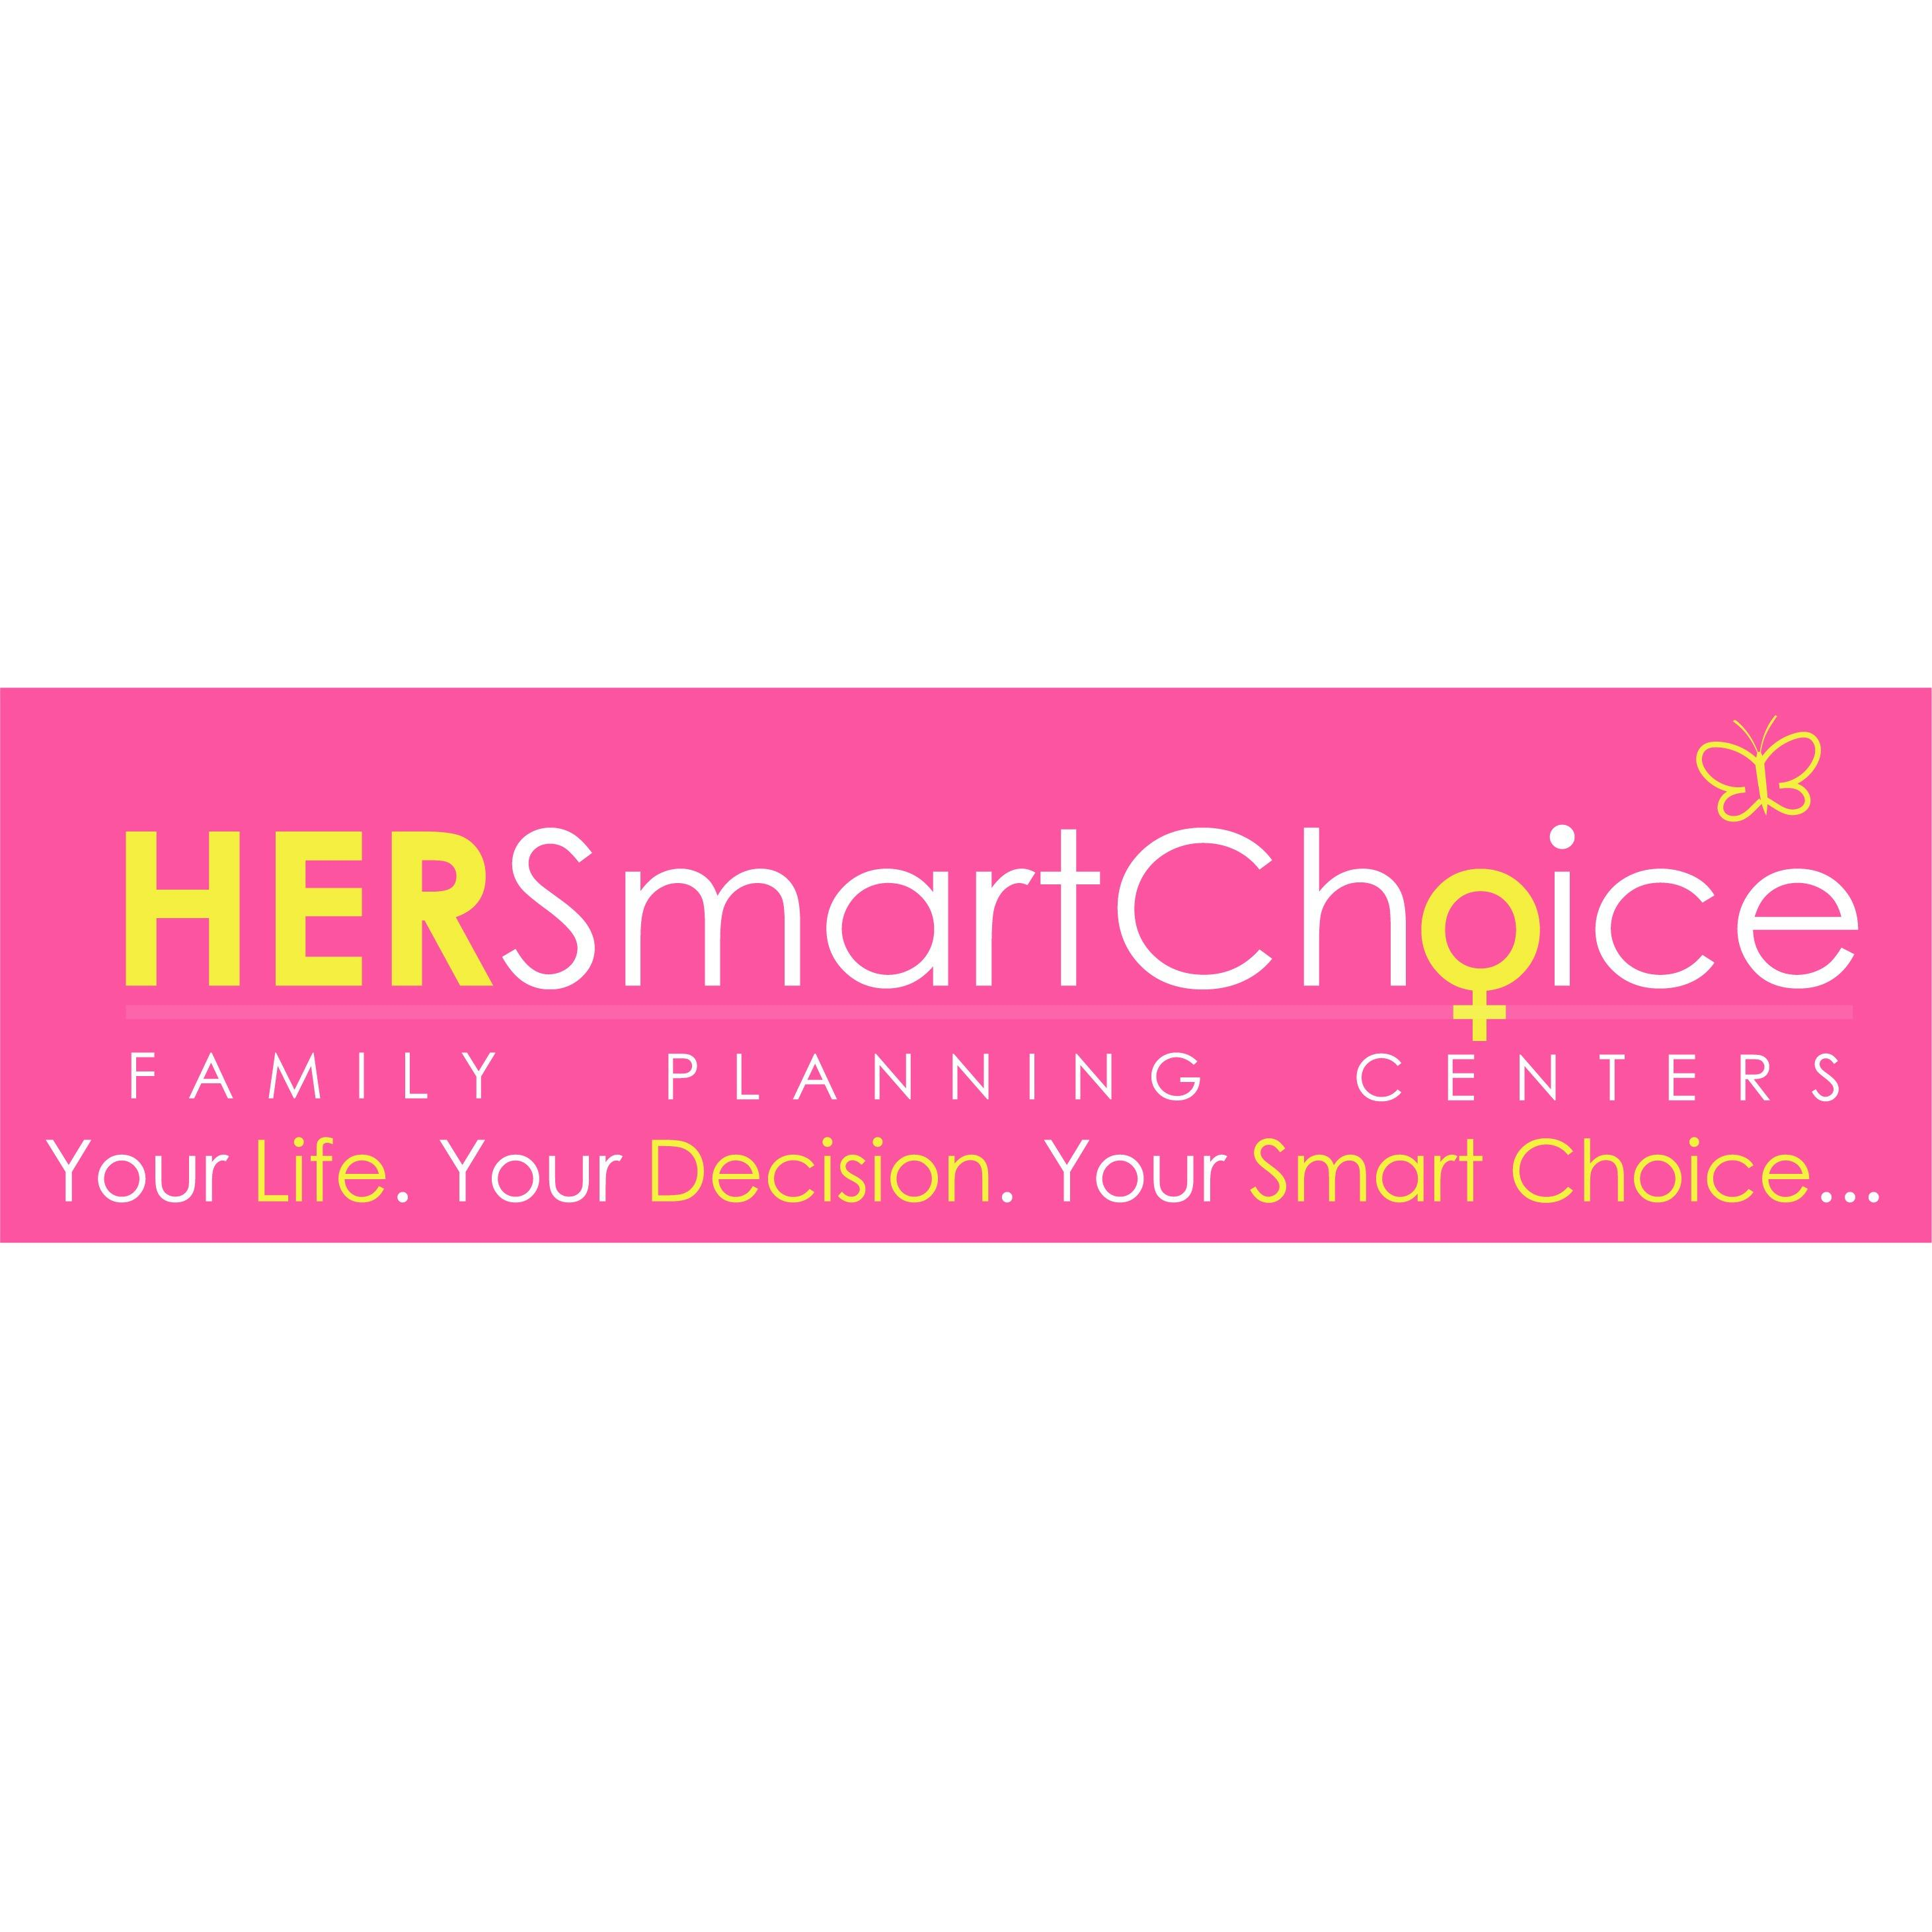 Her Smart Choice